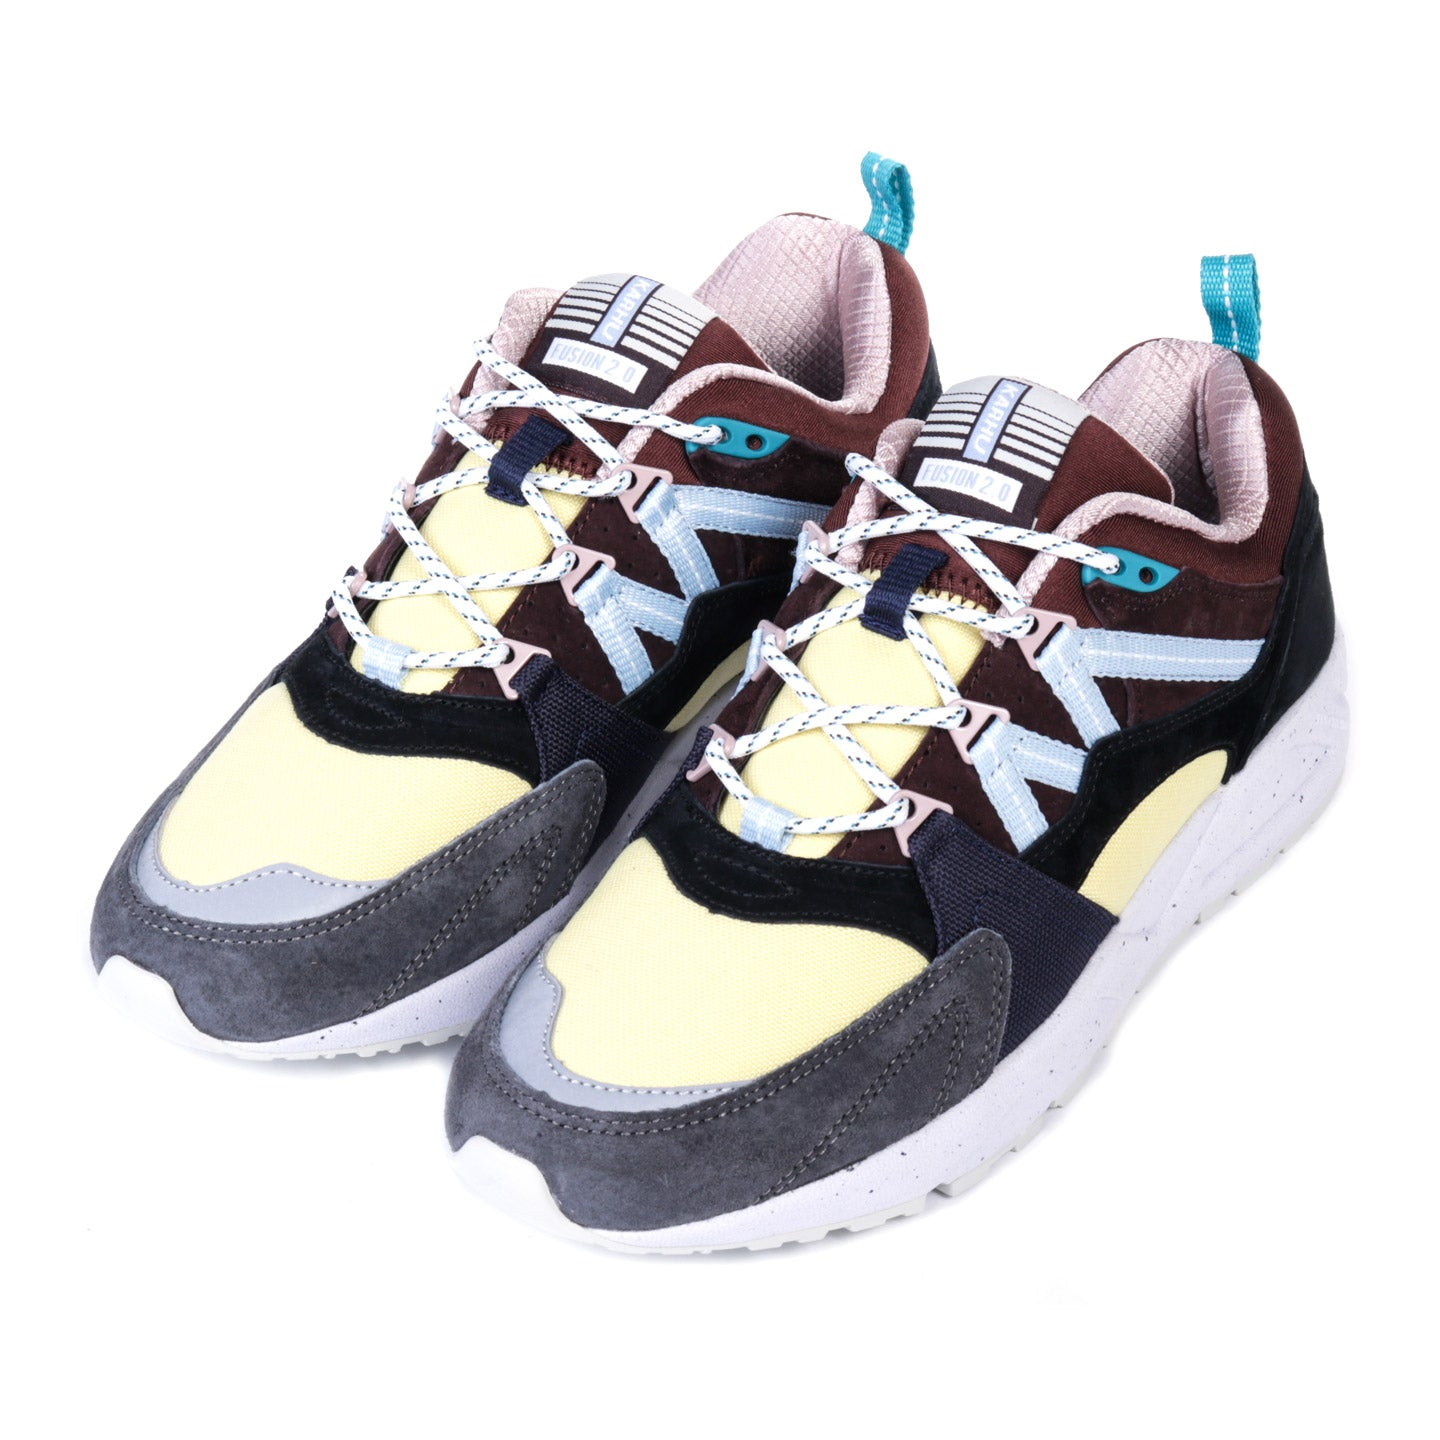 KARHU FUSION 2.0 CHOCOLATE TORTE / SHADOW GRAY